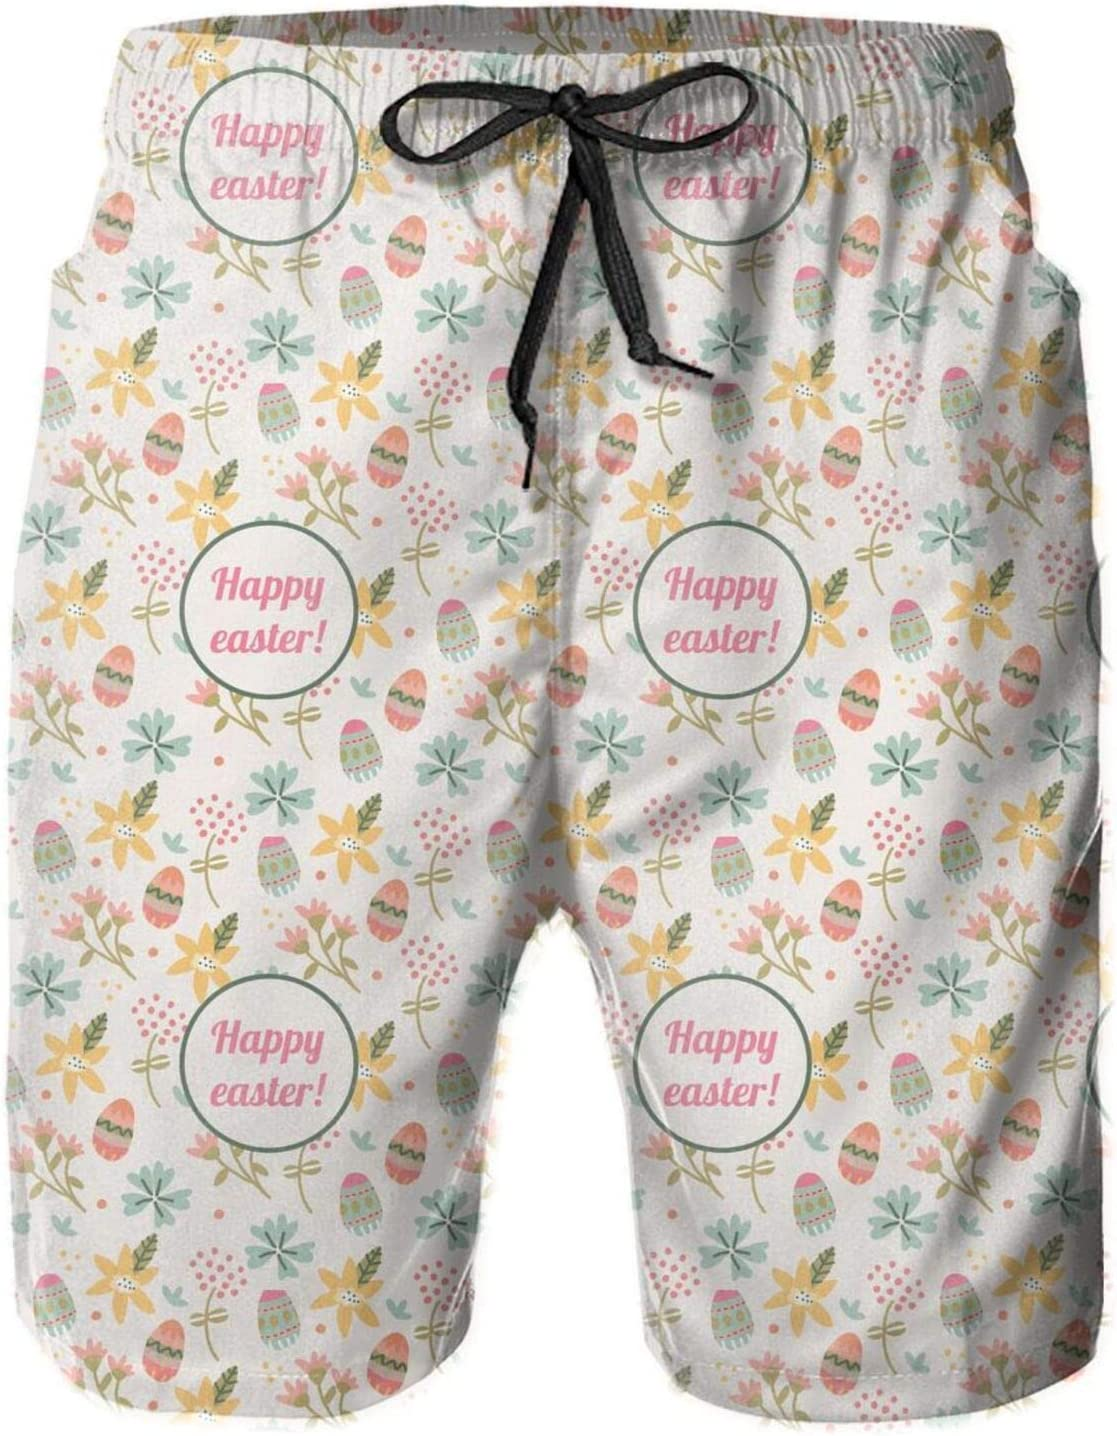 pengyong Easter Chicks and Bunnies Happy Easter Summer Underwear Board Shorts Bathing Suits Holiday Swim Trunks Quick Dry